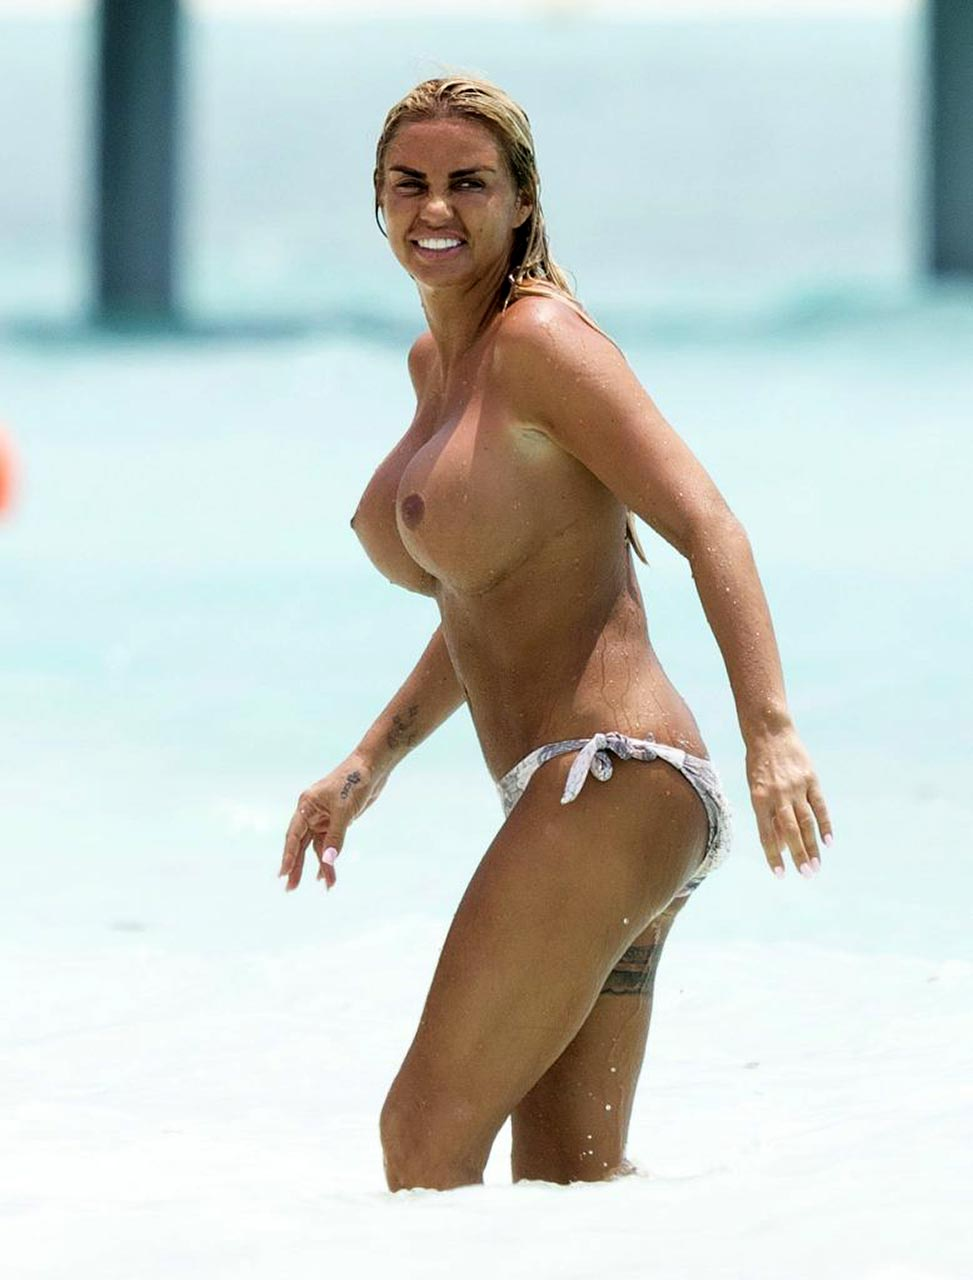 Katie Price topless in Maldives